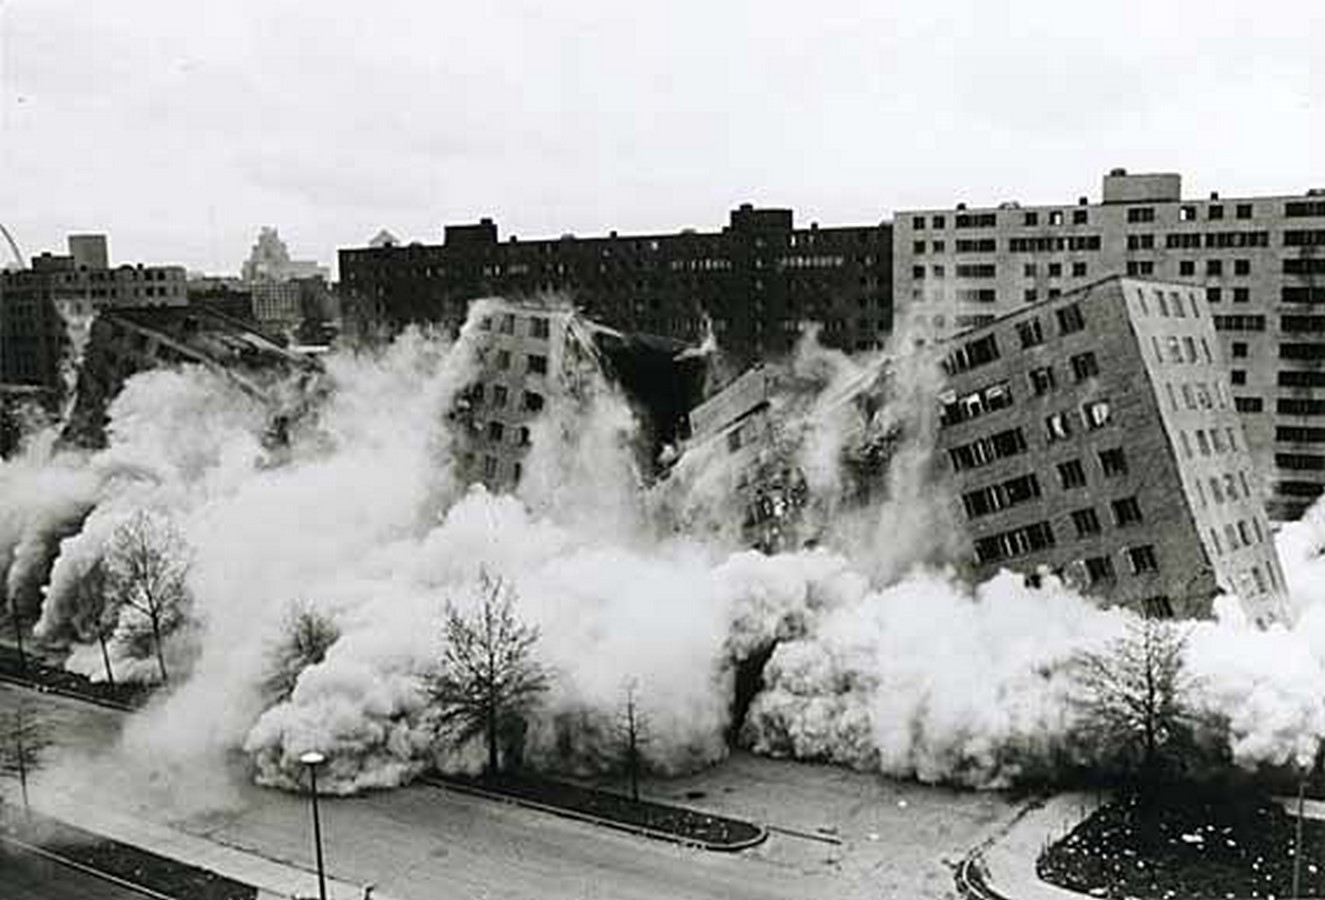 Pruitt-Igoe Housing Development St. Louis by Minoru Yamasaki- The troubled paradise - Sheet2